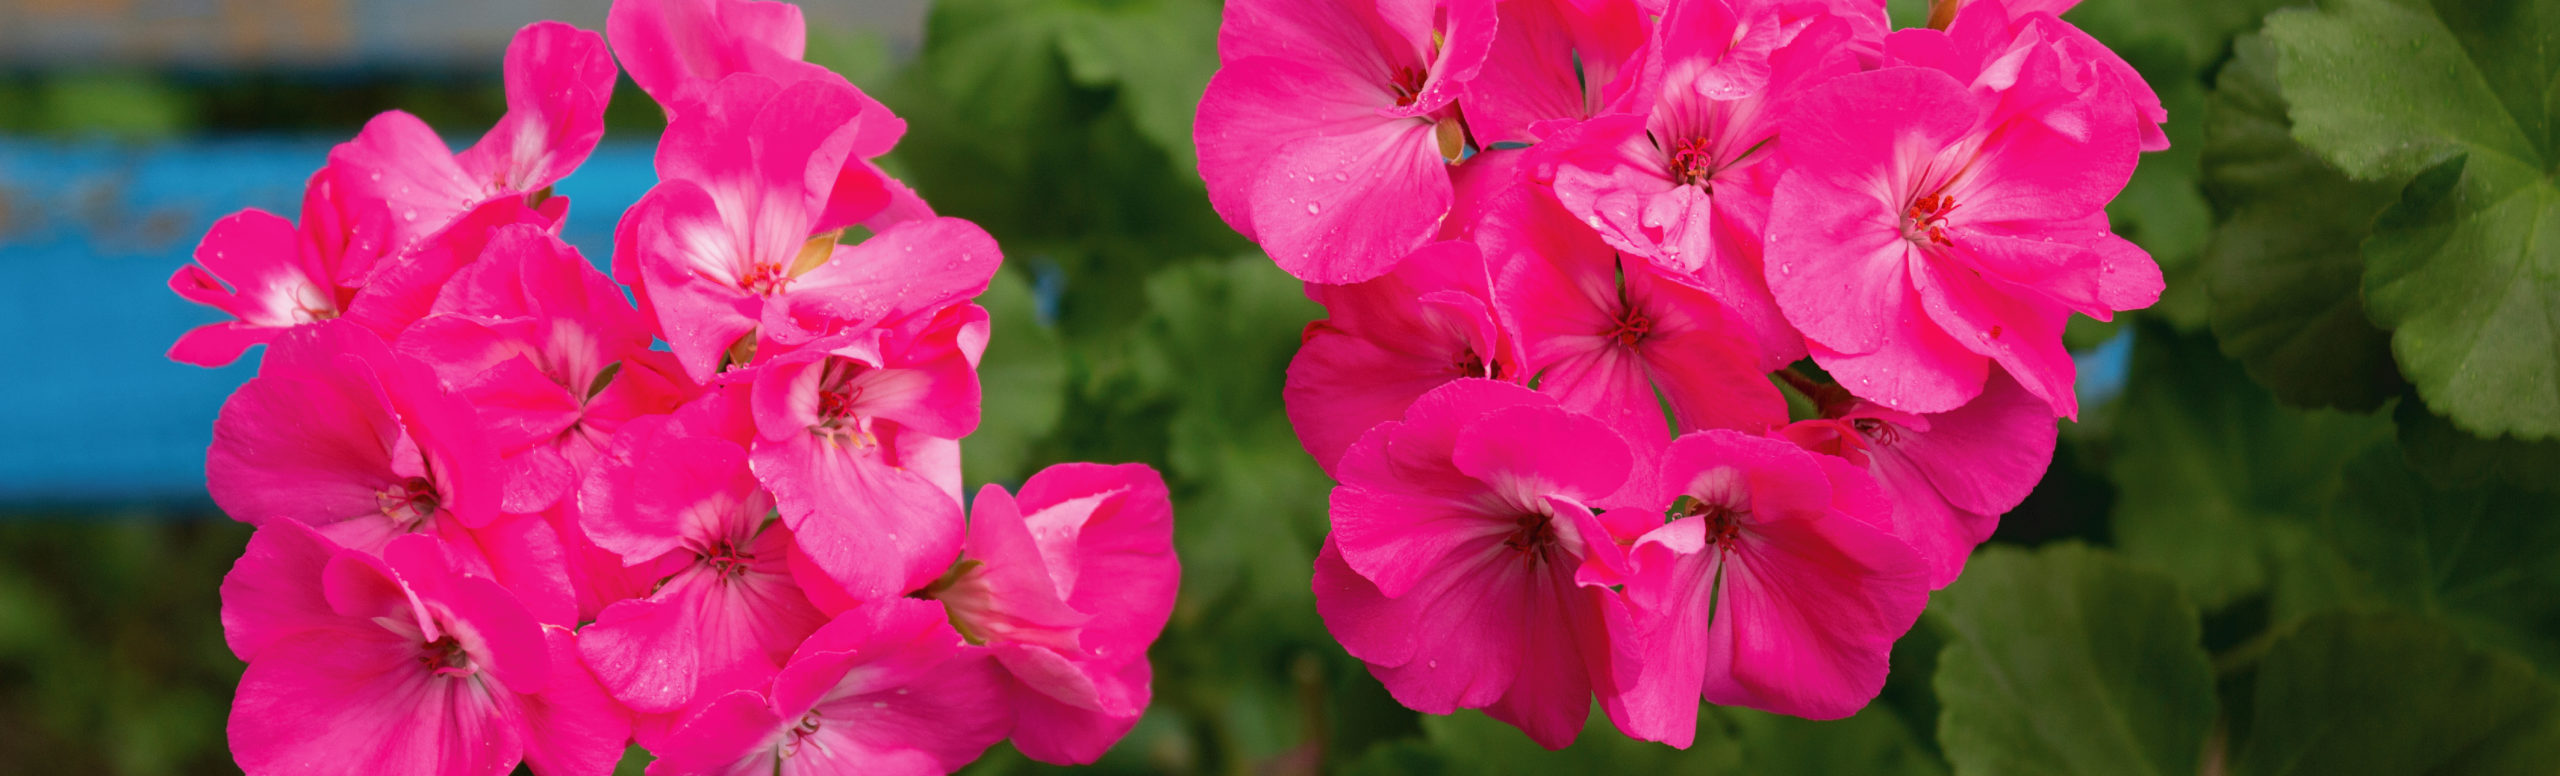 Flower Power: Geranium Offers Super Support During PMS, Hormonal Imbalance